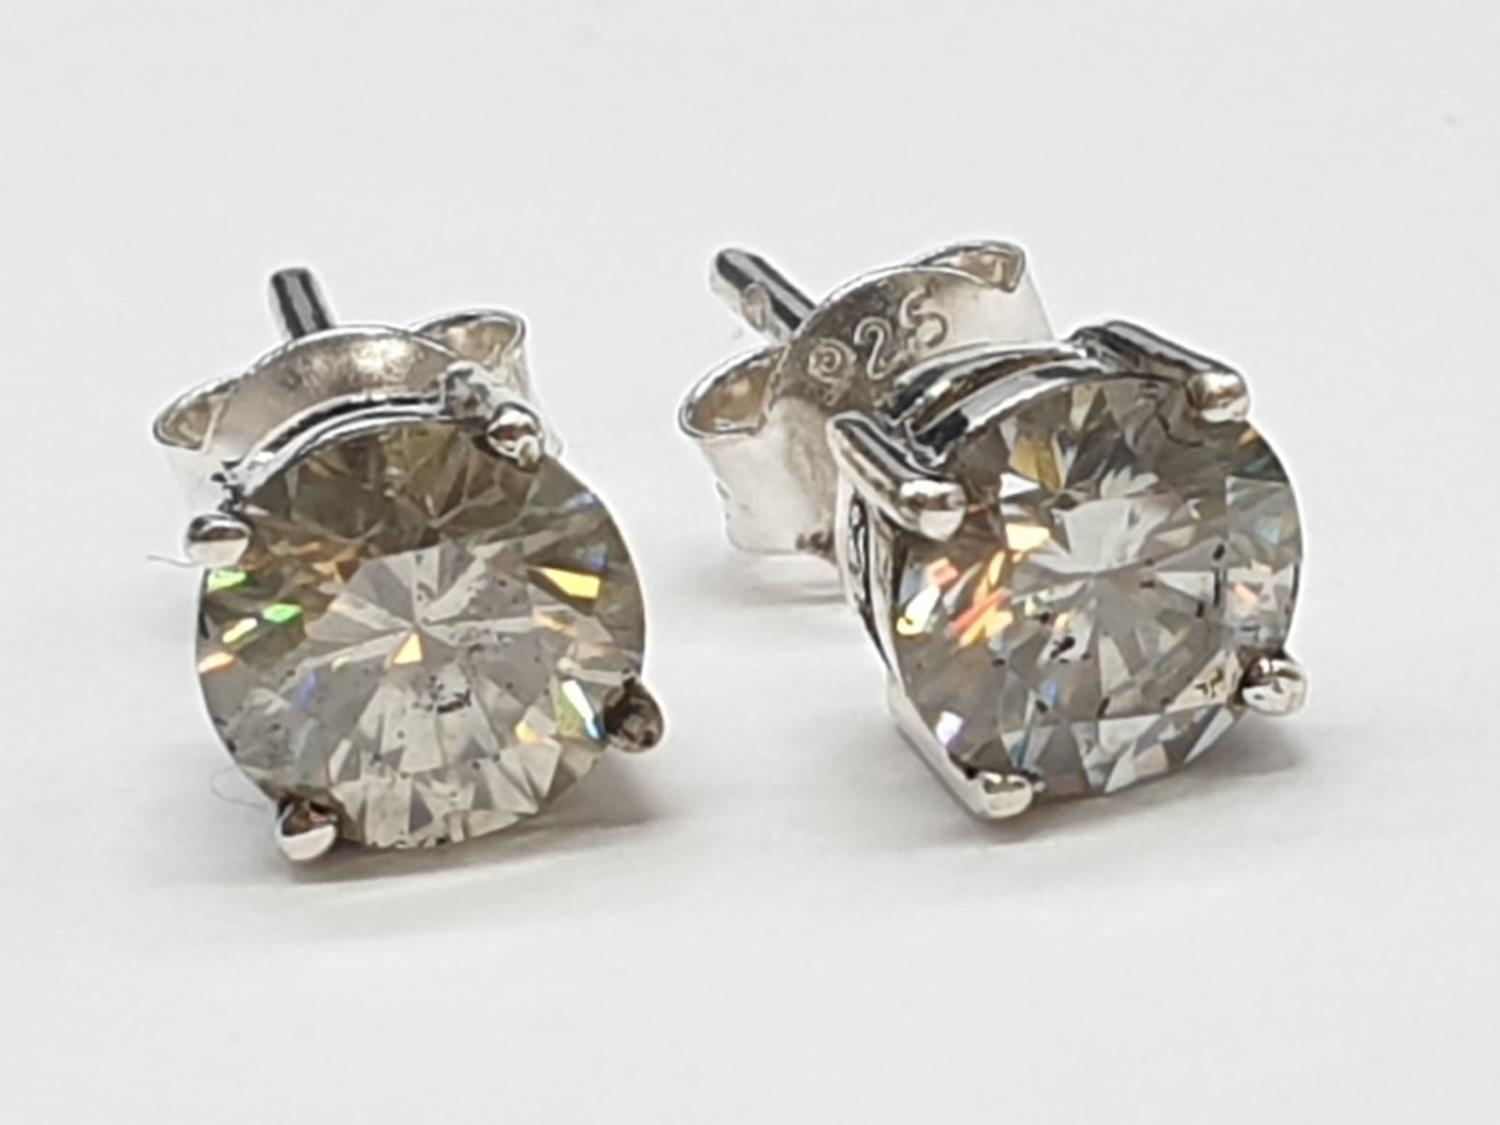 1.80cts White Moissanite Stone Stud Earrings in Sterling Silver with butterfly clips. Weight 1.63